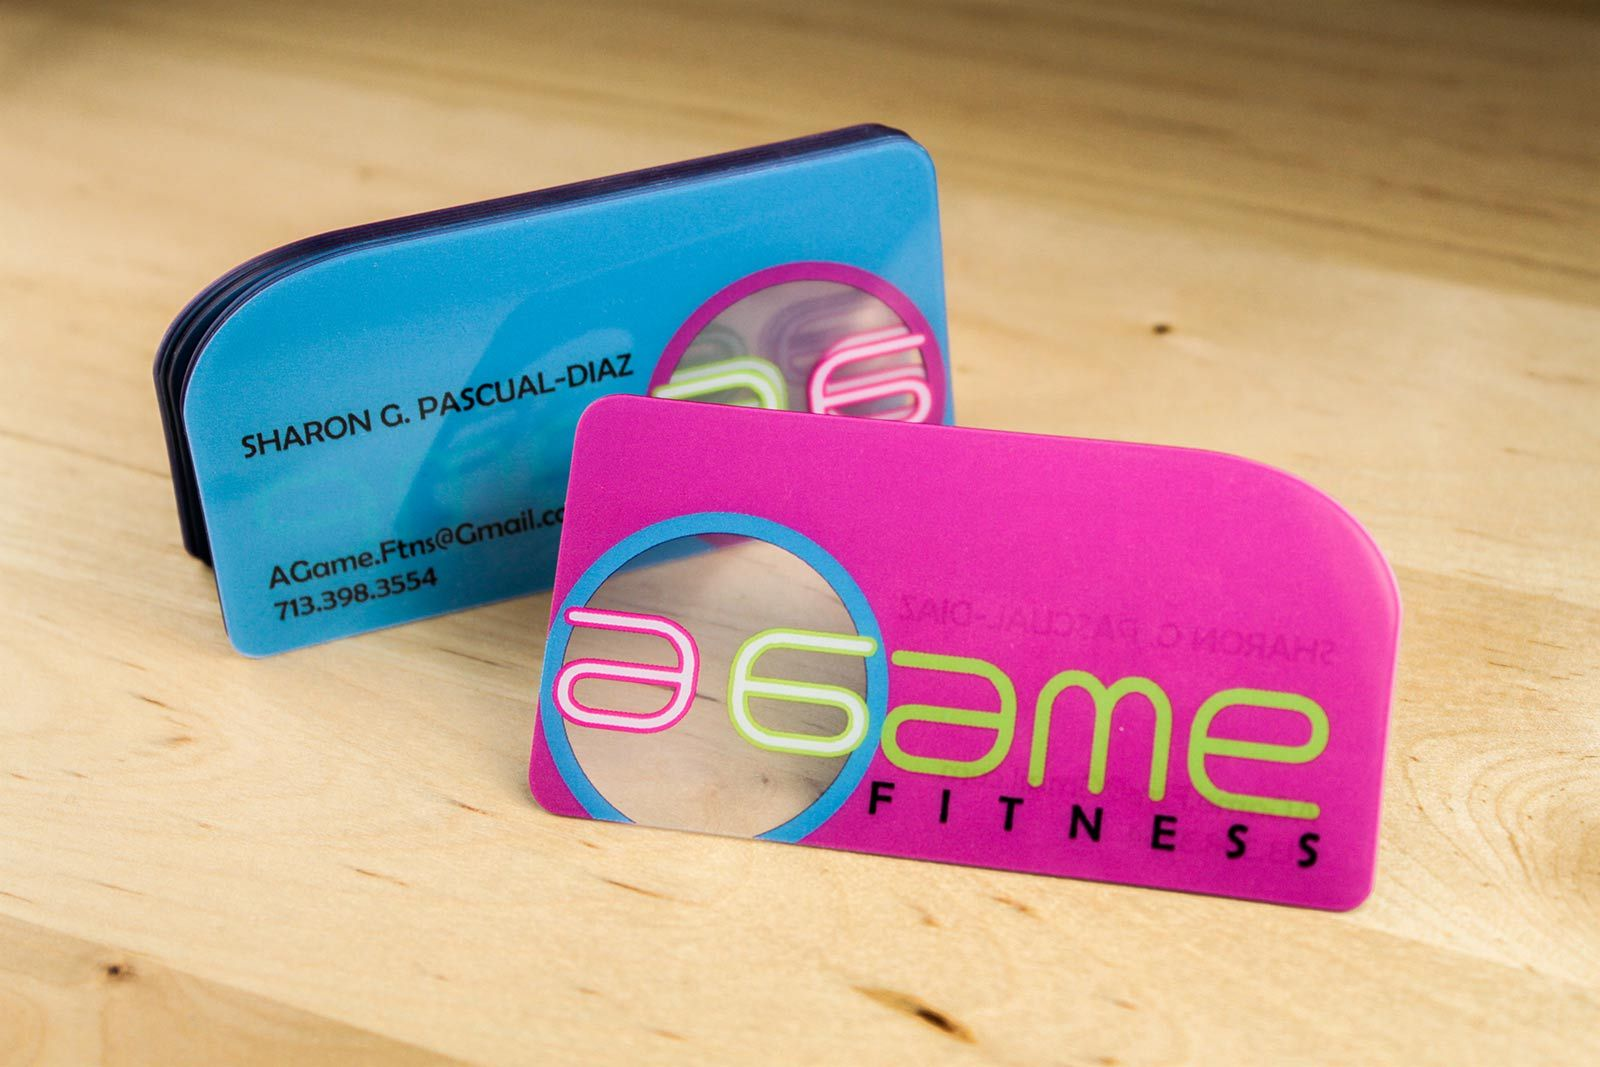 custom shape die cut creative business cards to A Game Fitness ...